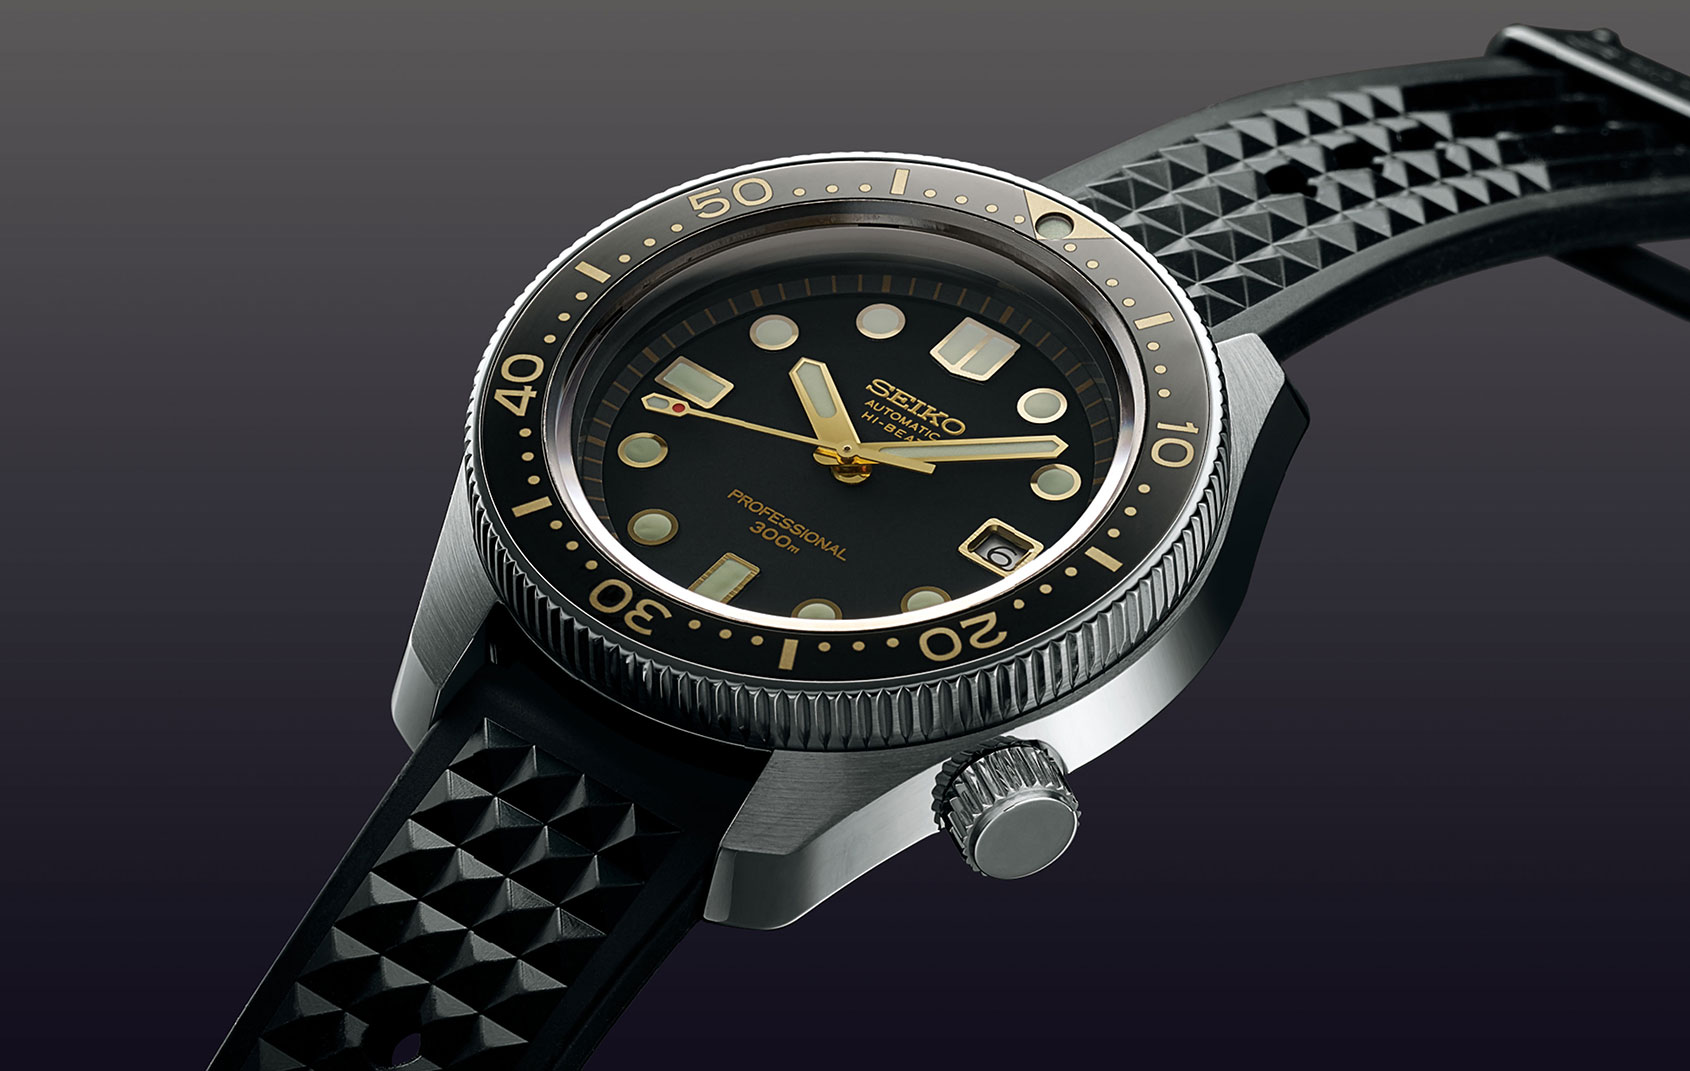 INTRODUCING: The Seiko Automatic Divers Re-creation Limited Edition SLA025